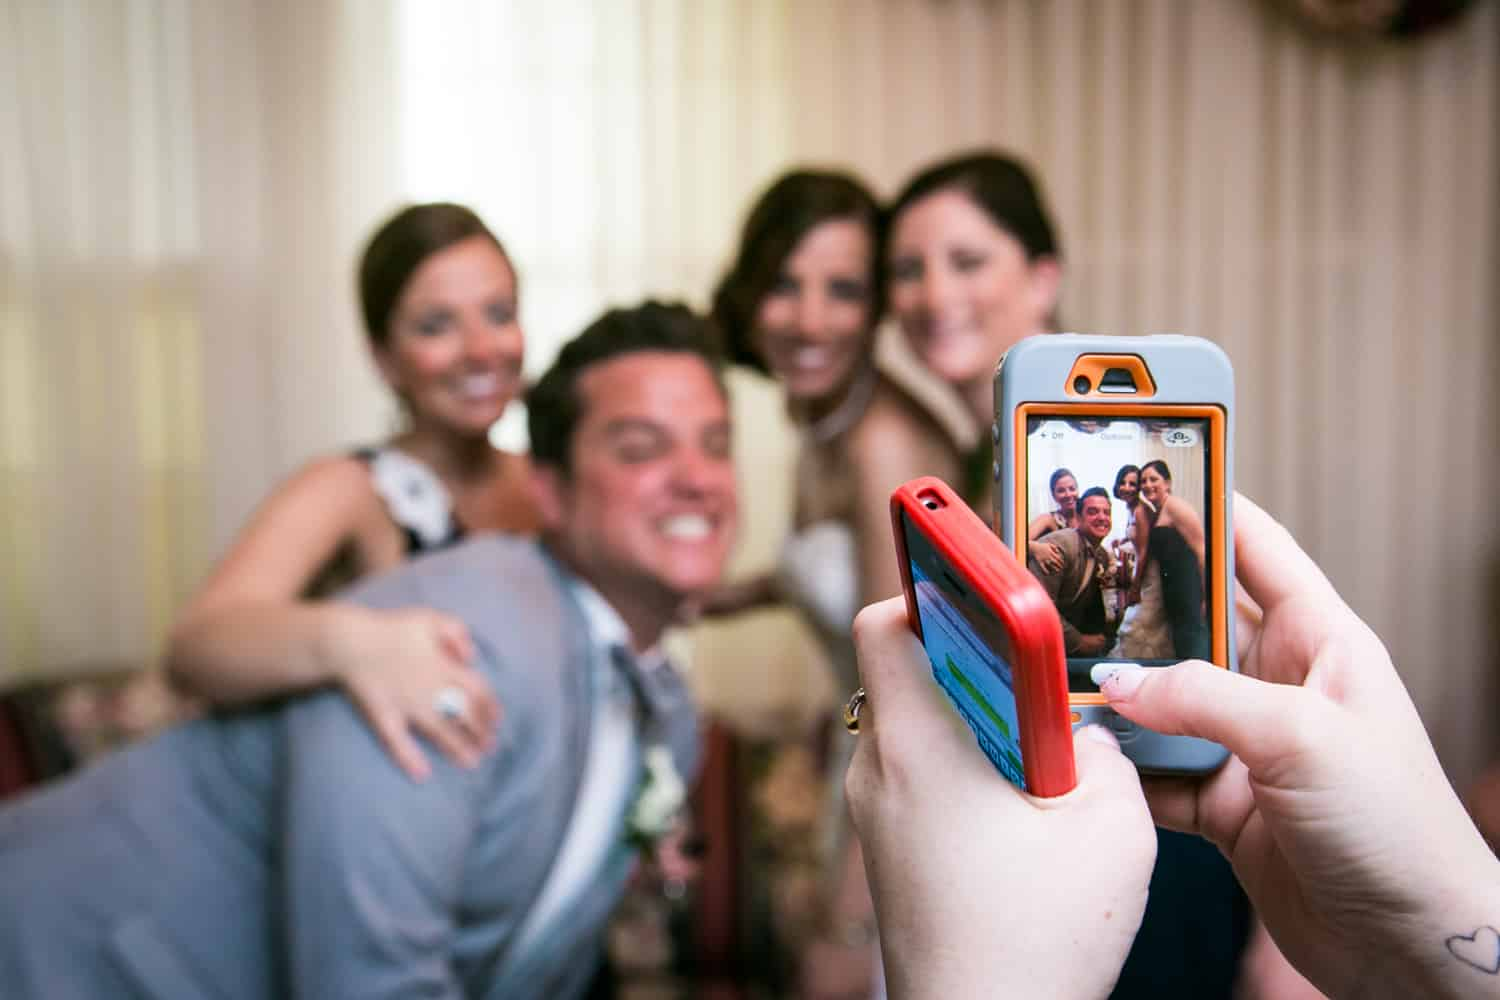 Hands taking photo of bridal party with cell phone